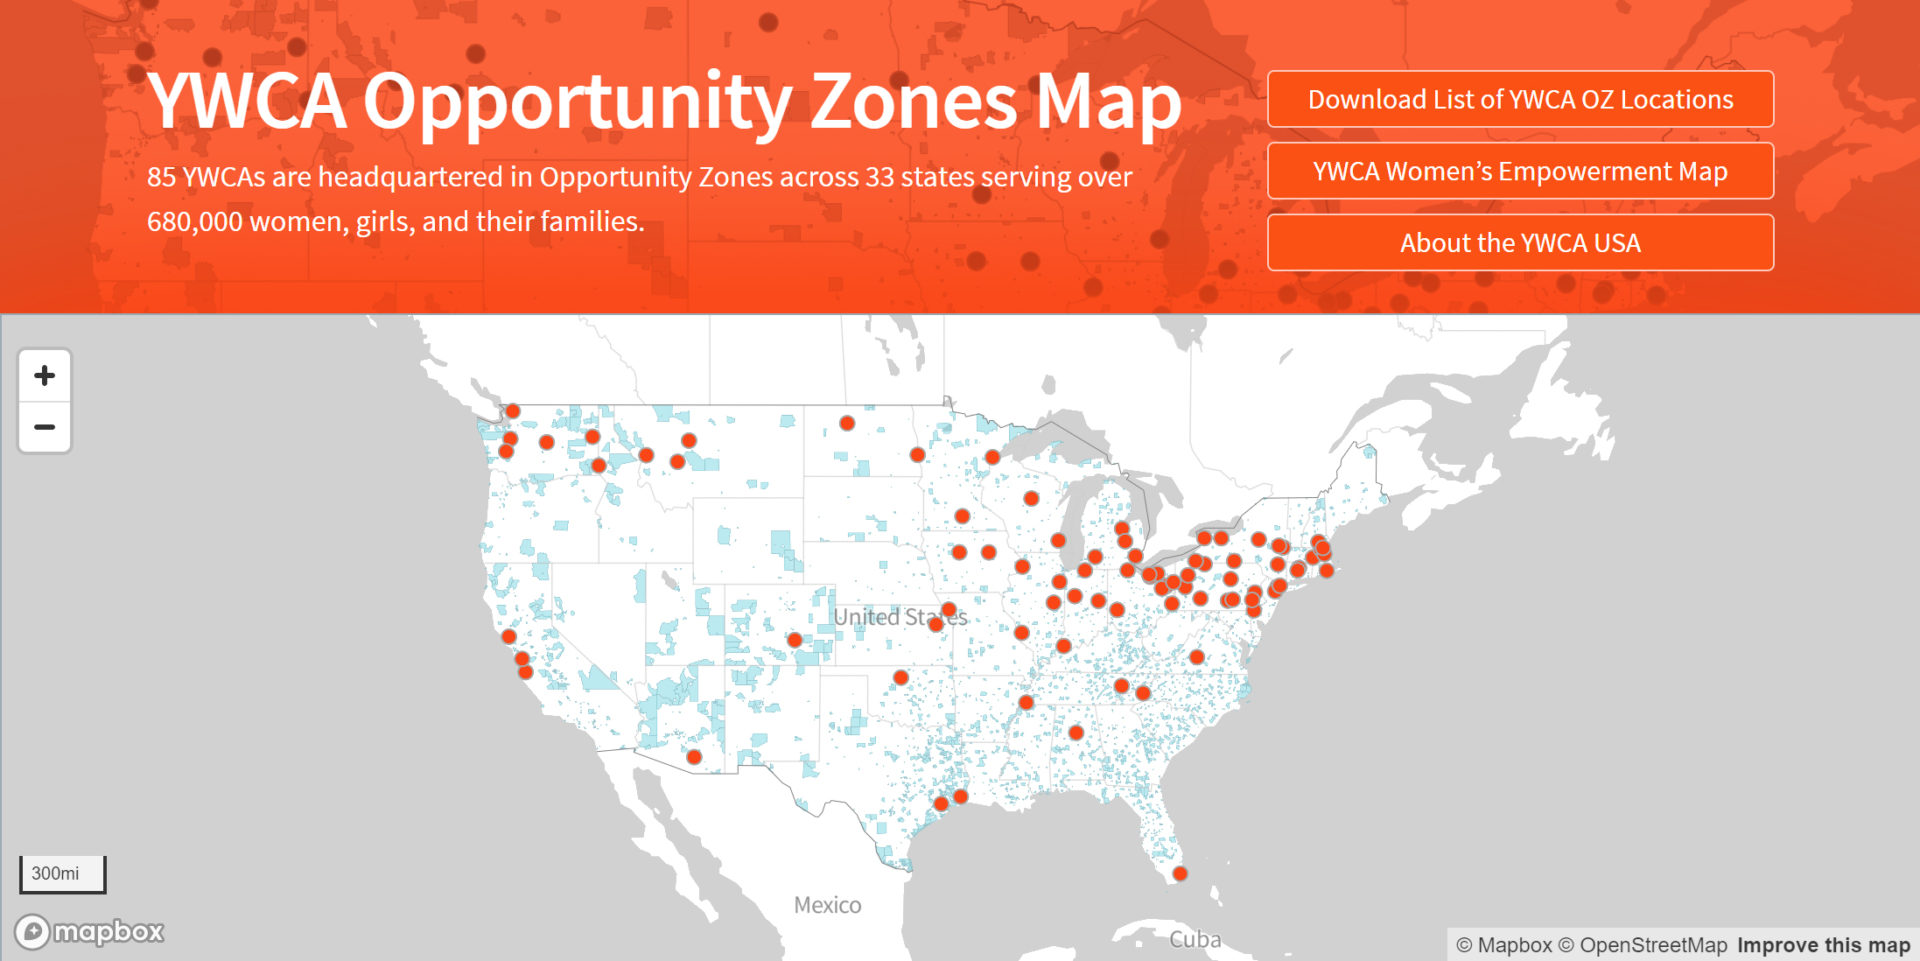 YWCA Opportunity Zones Map 2020